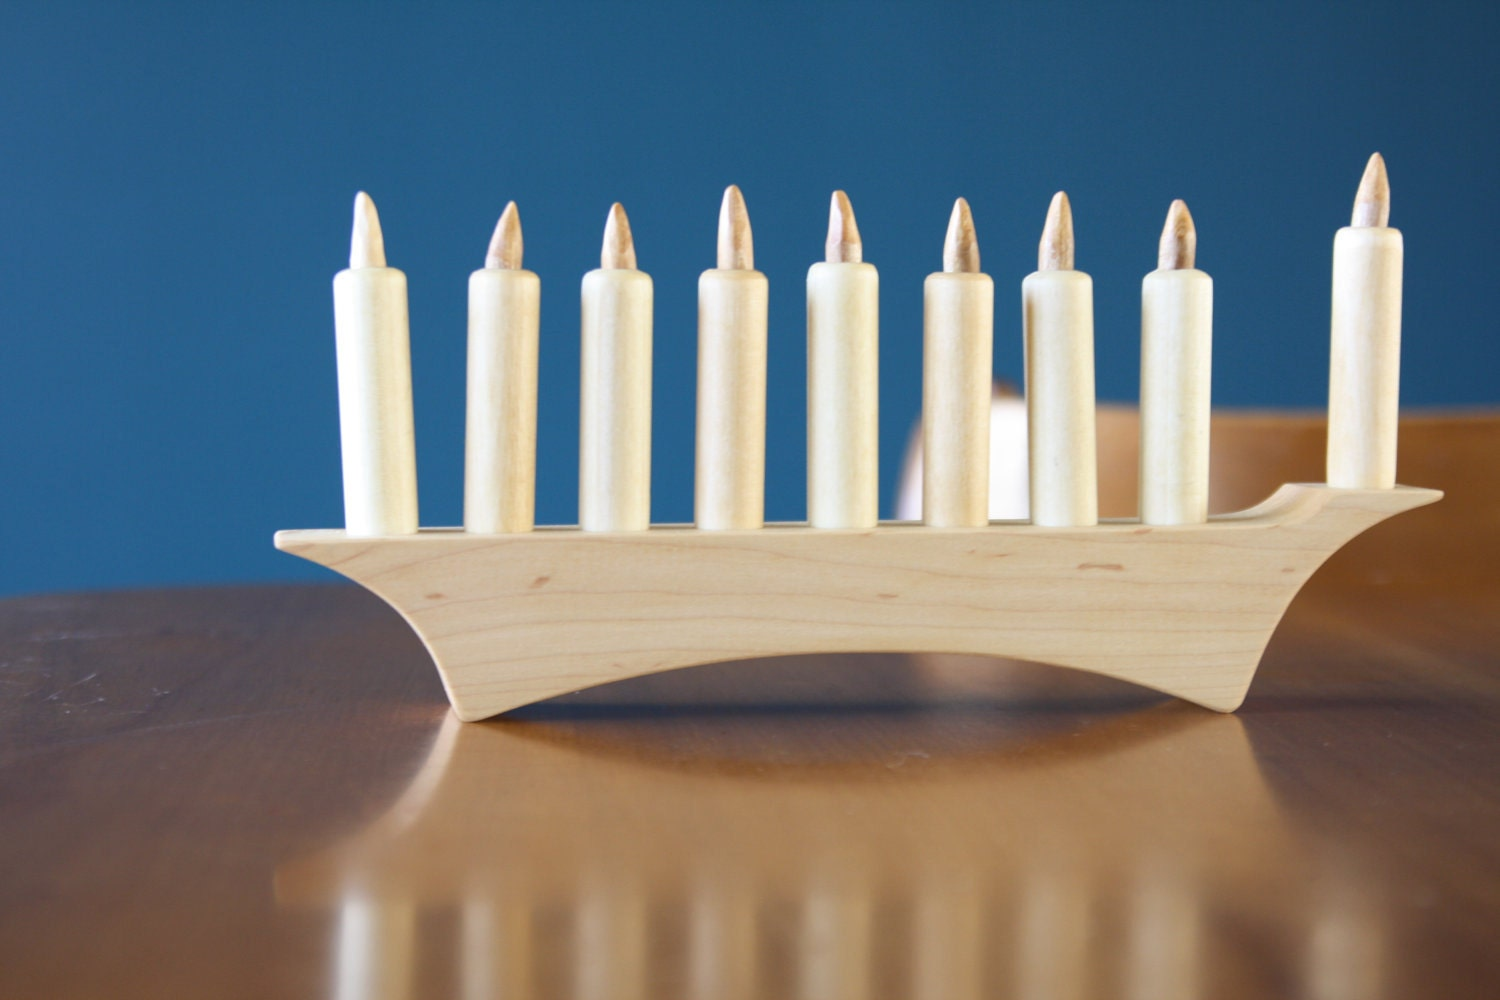 Modern Style Hanukkah Menorah in Wood The Family Heirloom by Little Alouette 10 piece set